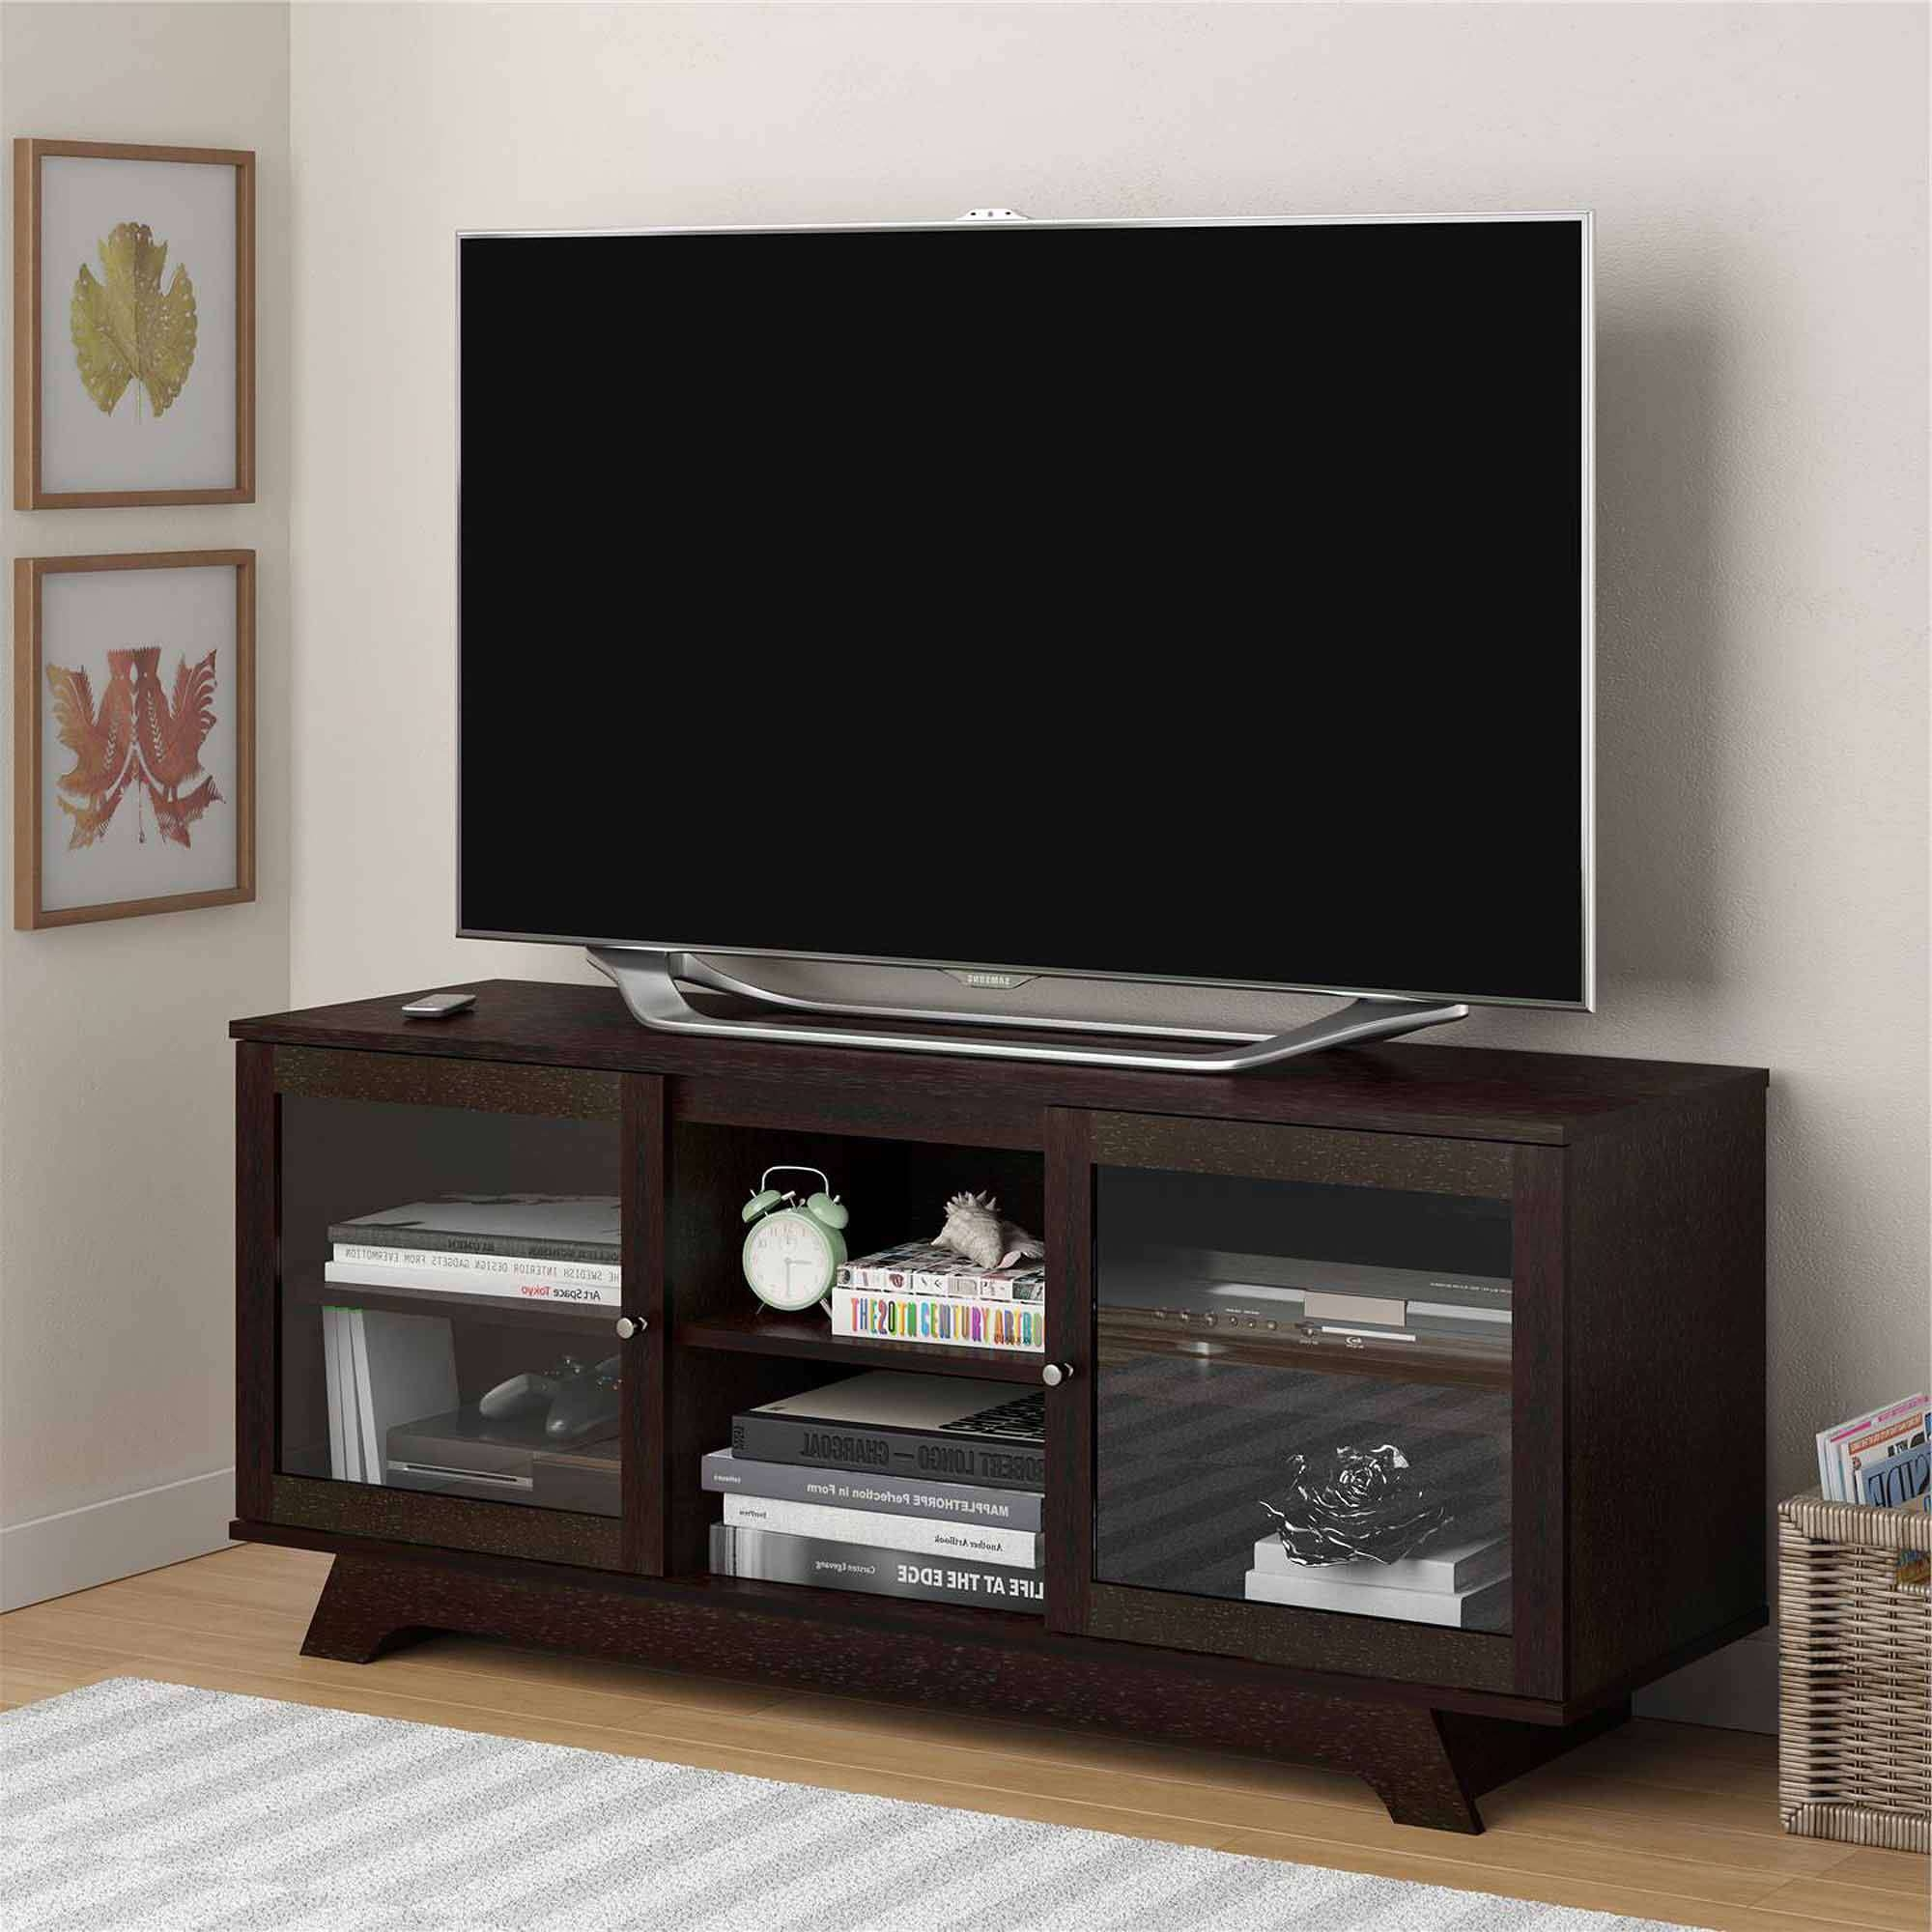 Tv Stands & Entertainment Centers – Walmart Intended For Tv Cabinets (View 4 of 20)